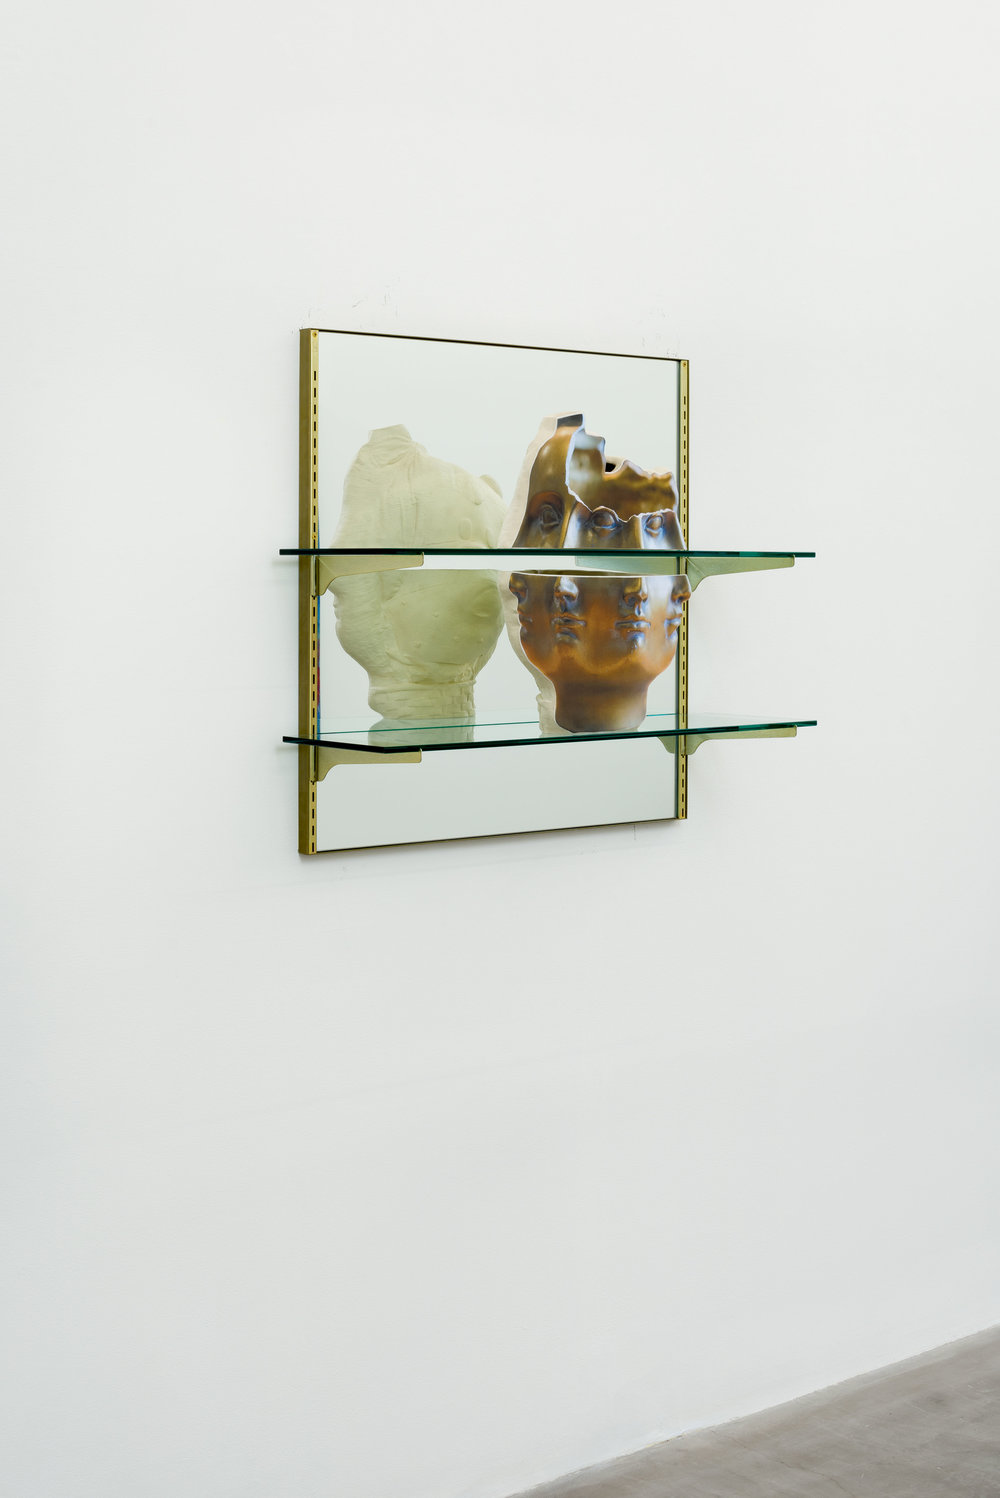 Picnic with Janus, 2017 ceramic with shelve, mirror, and frame 78,5 x 78,5 x 25,5 cm - 30 7/8 x 30 7/8 x 10 inches